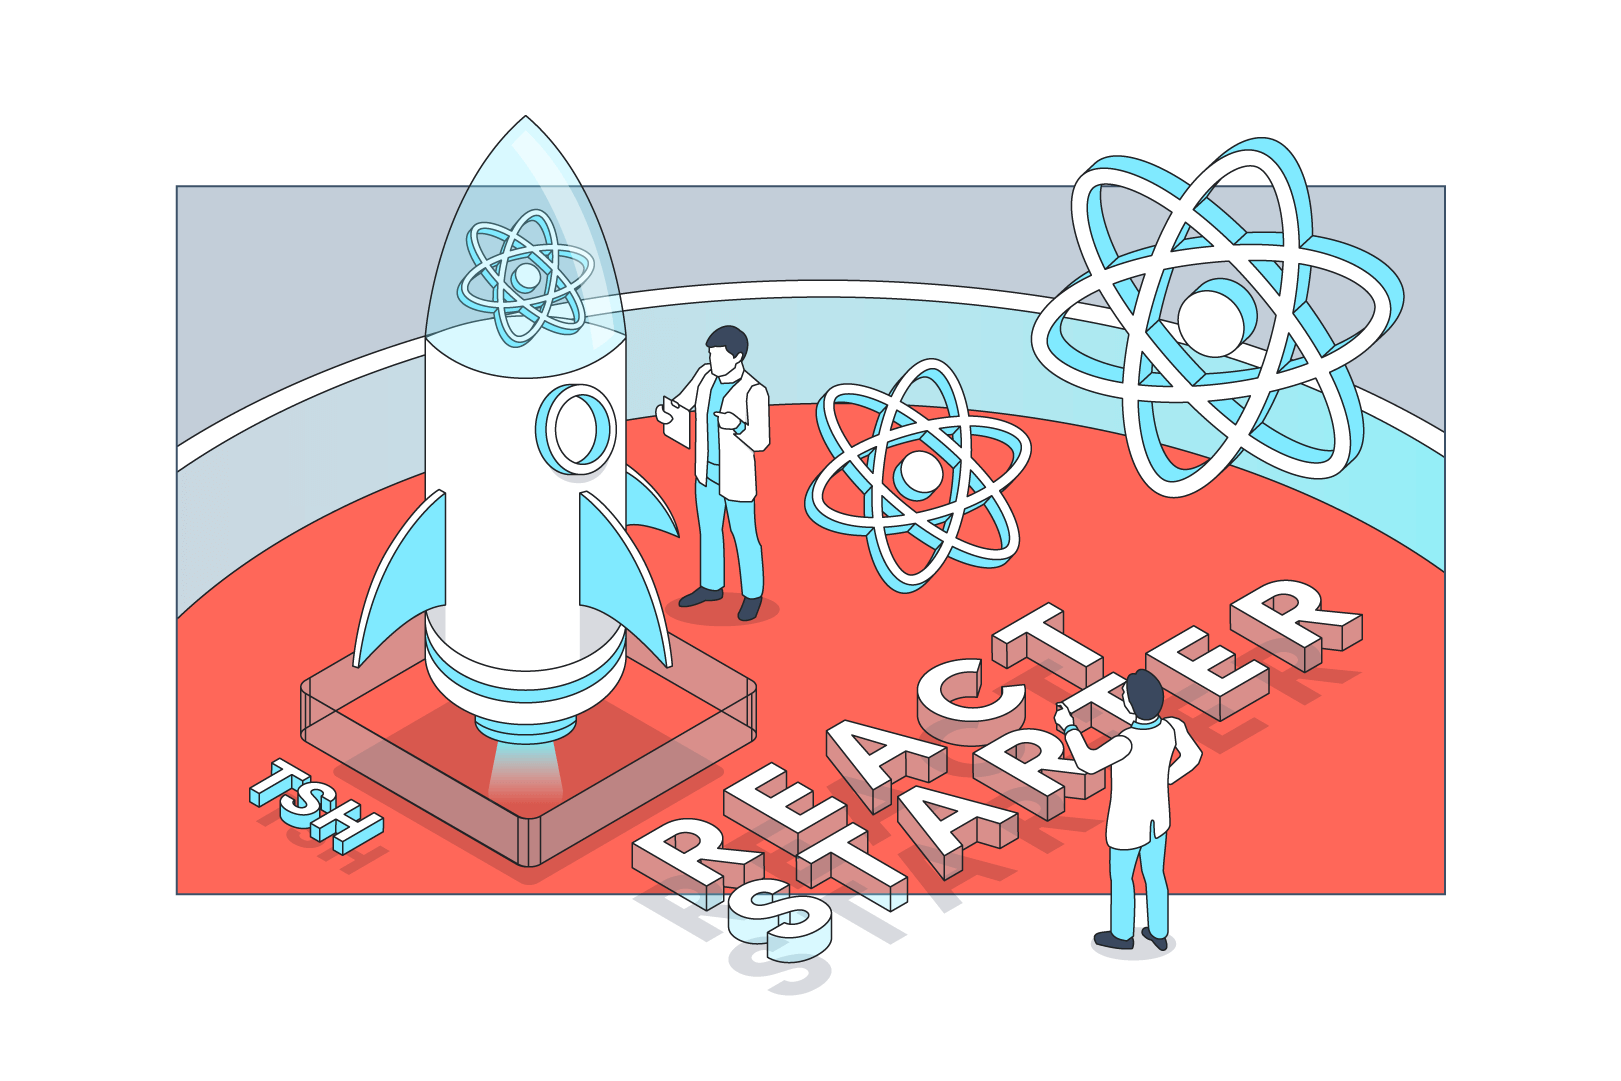 First days of a new software project? Meet React Starter kit created by TSH developers